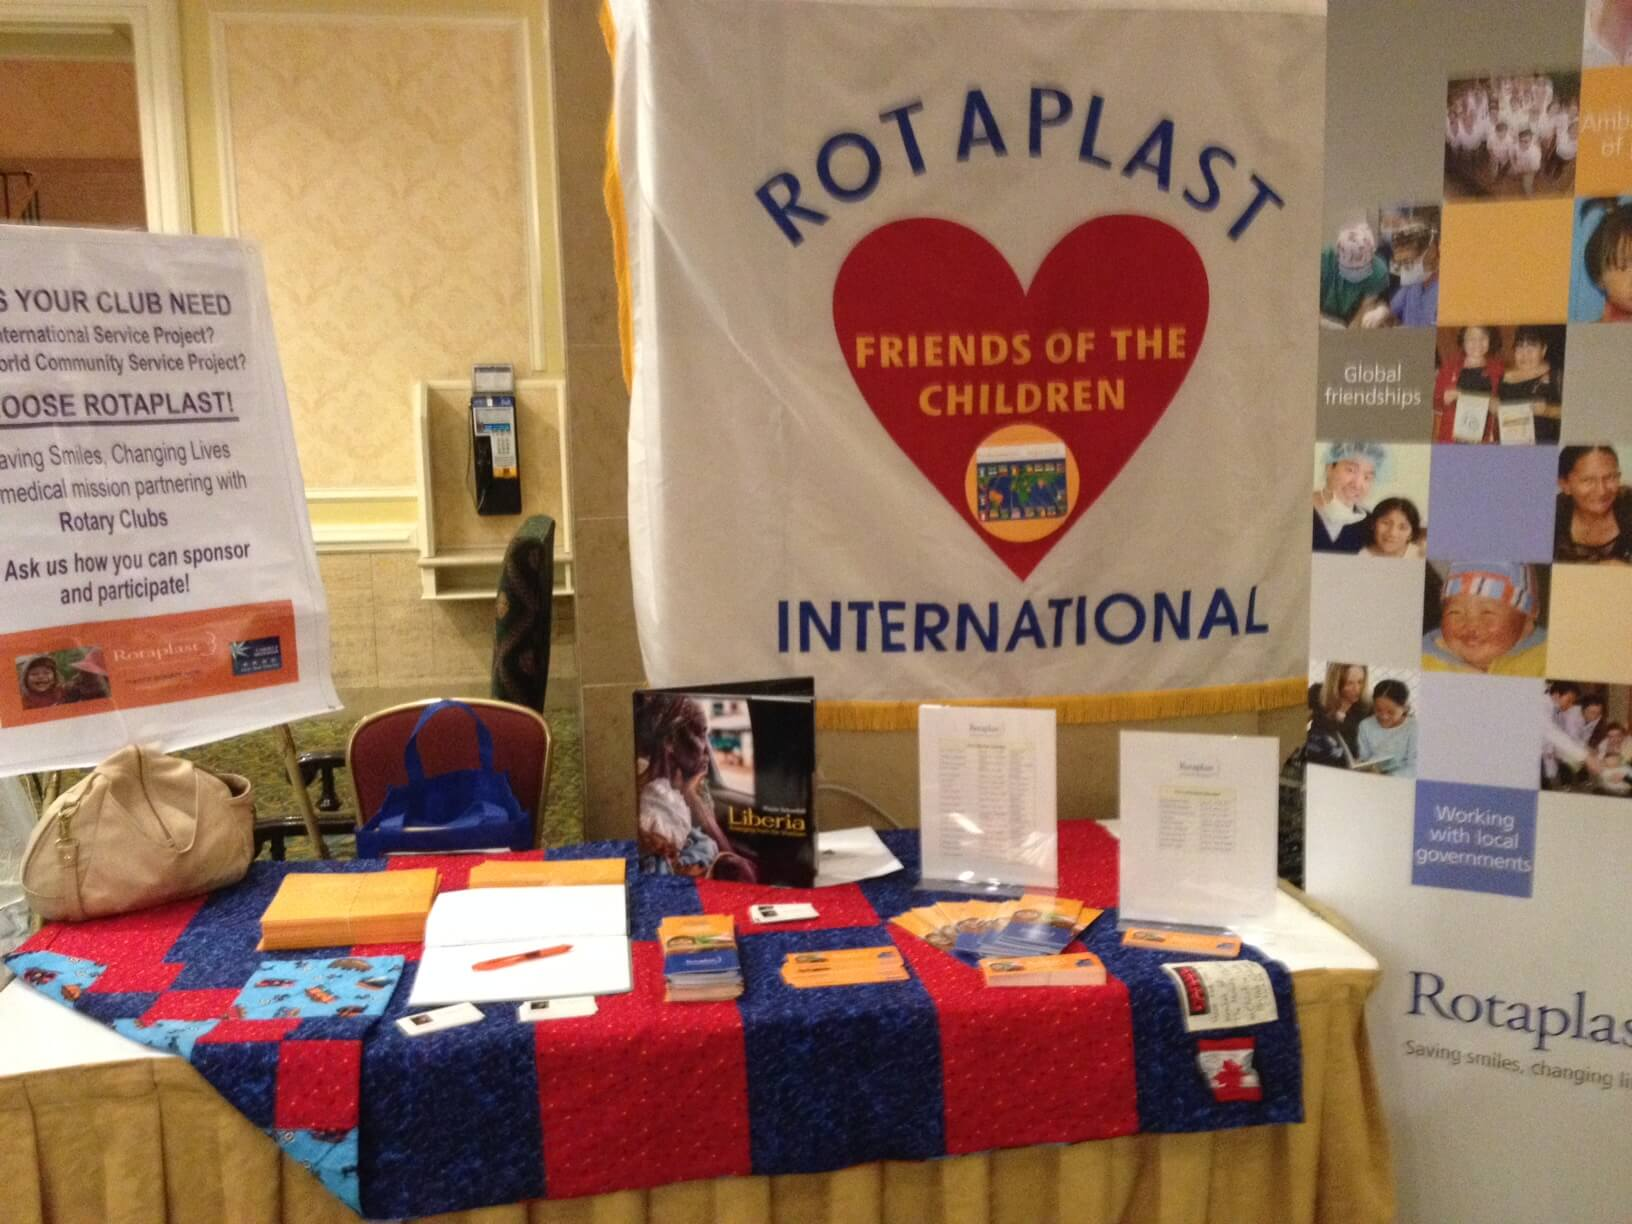 Rotaplast Booth in the House of Friendship